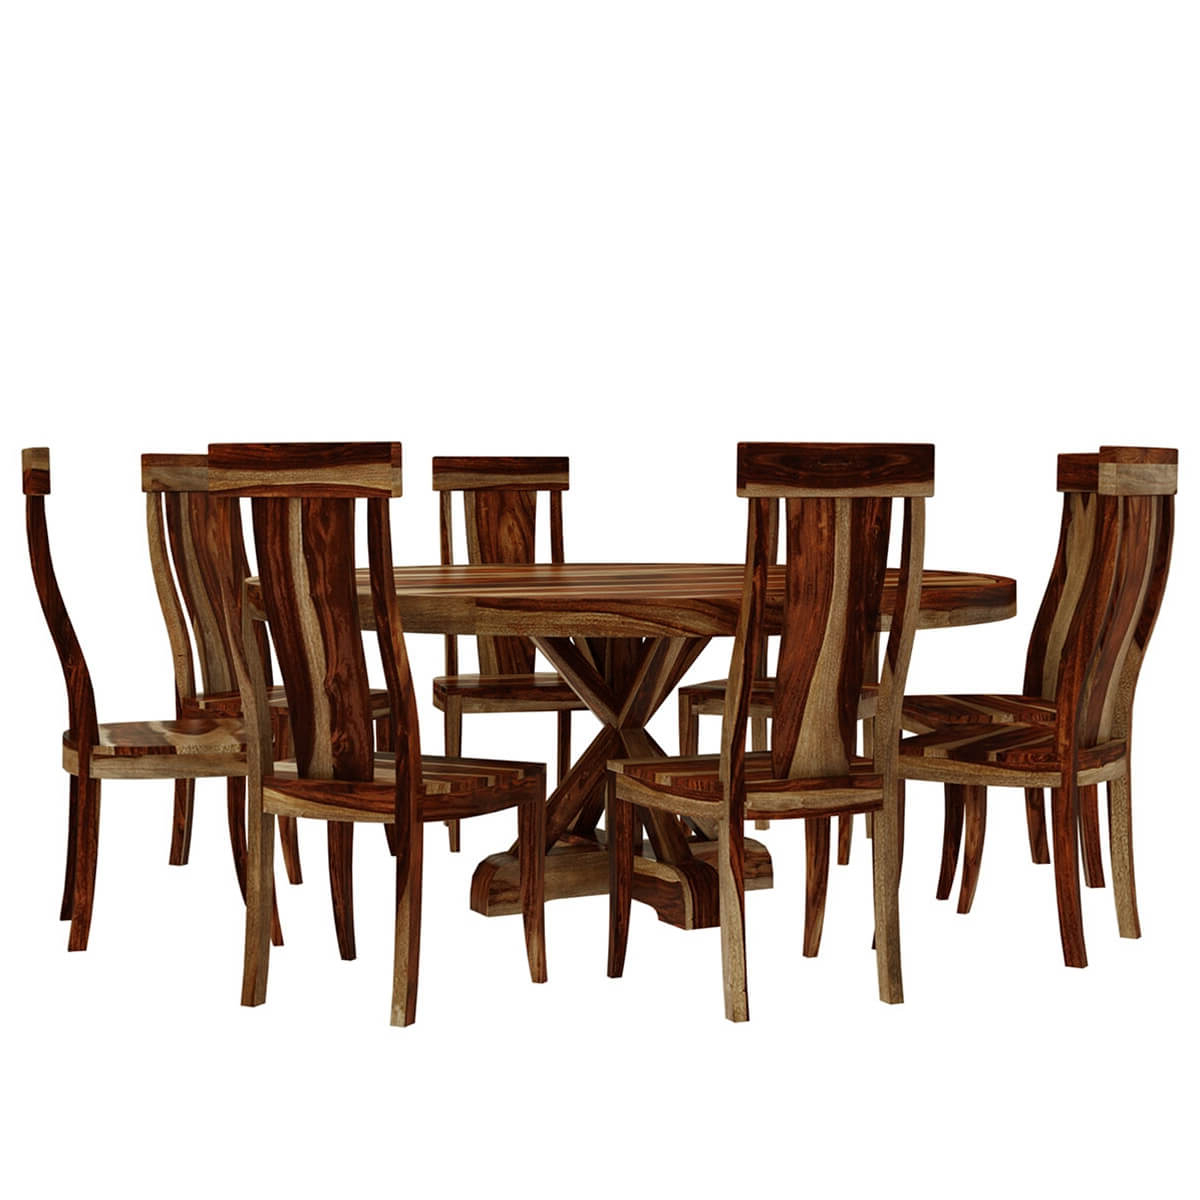 "Bedford X Pedestal Rustic 72"" Round Dining Table With 8 Chairs Set Inside Recent Bedfo 3 Piece Dining Sets (View 5 of 25)"